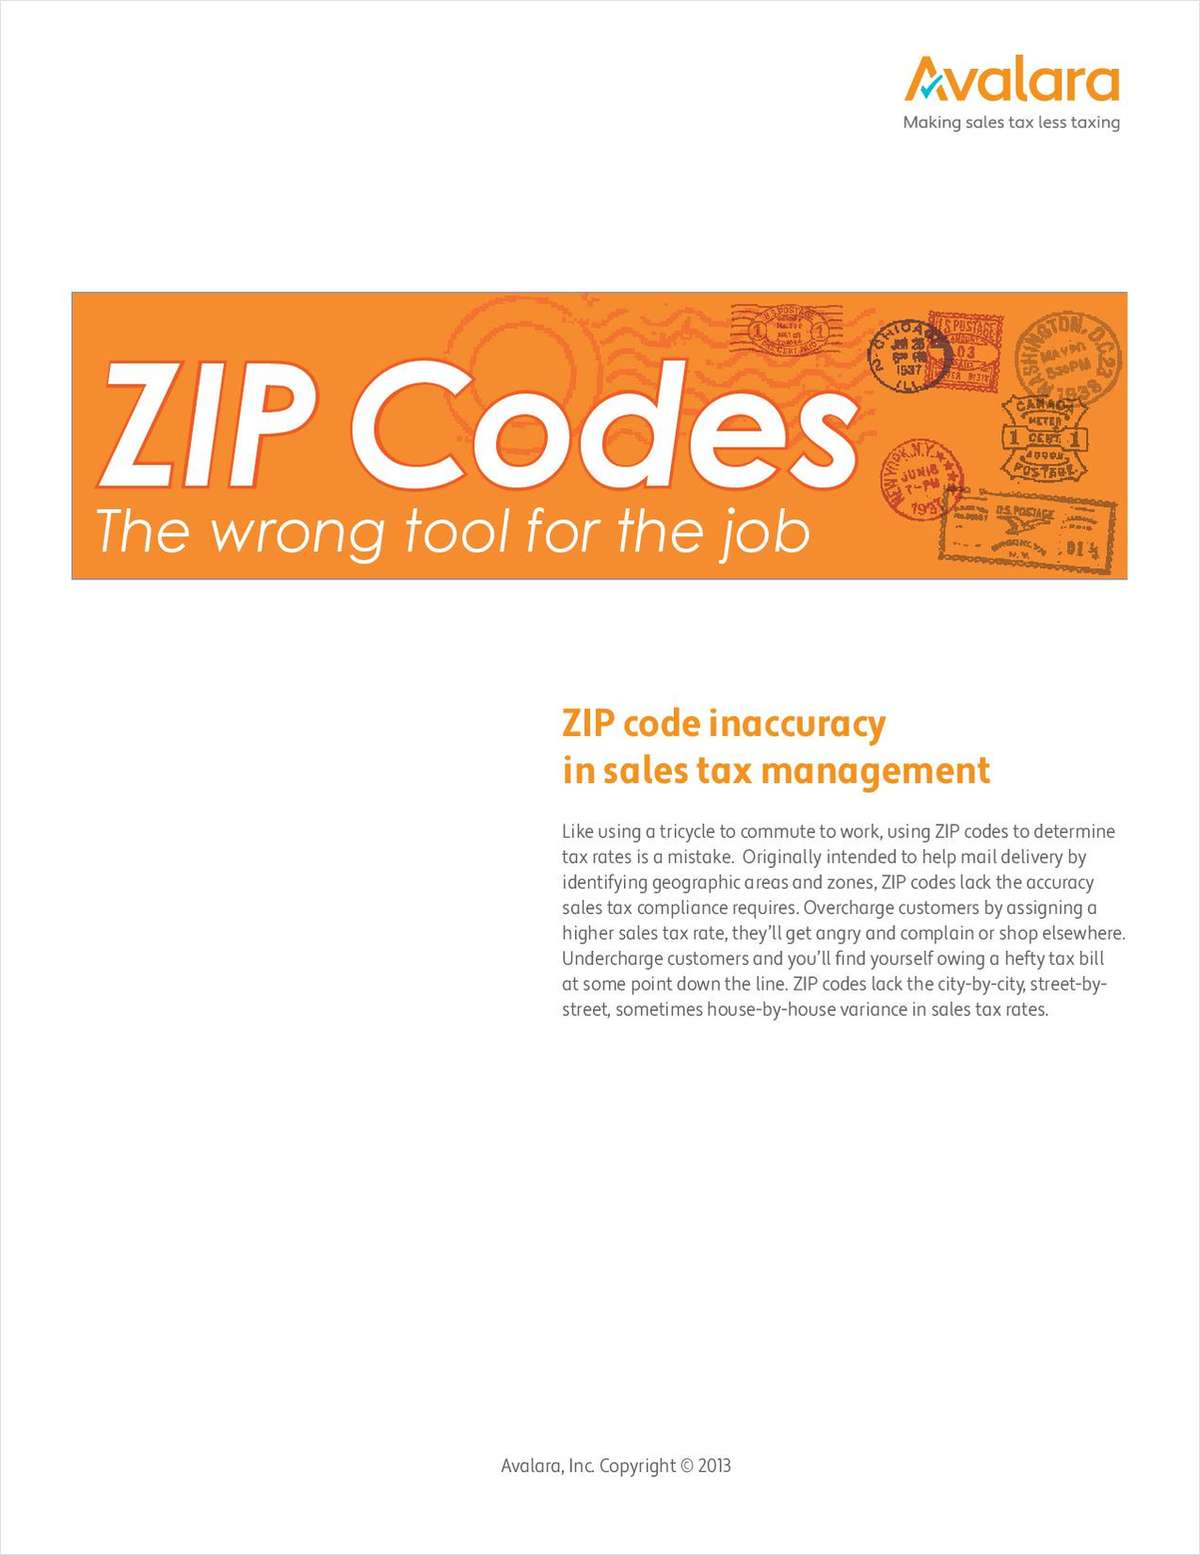 ZIP Codes: The Wrong Tool for Calculating Sales Tax